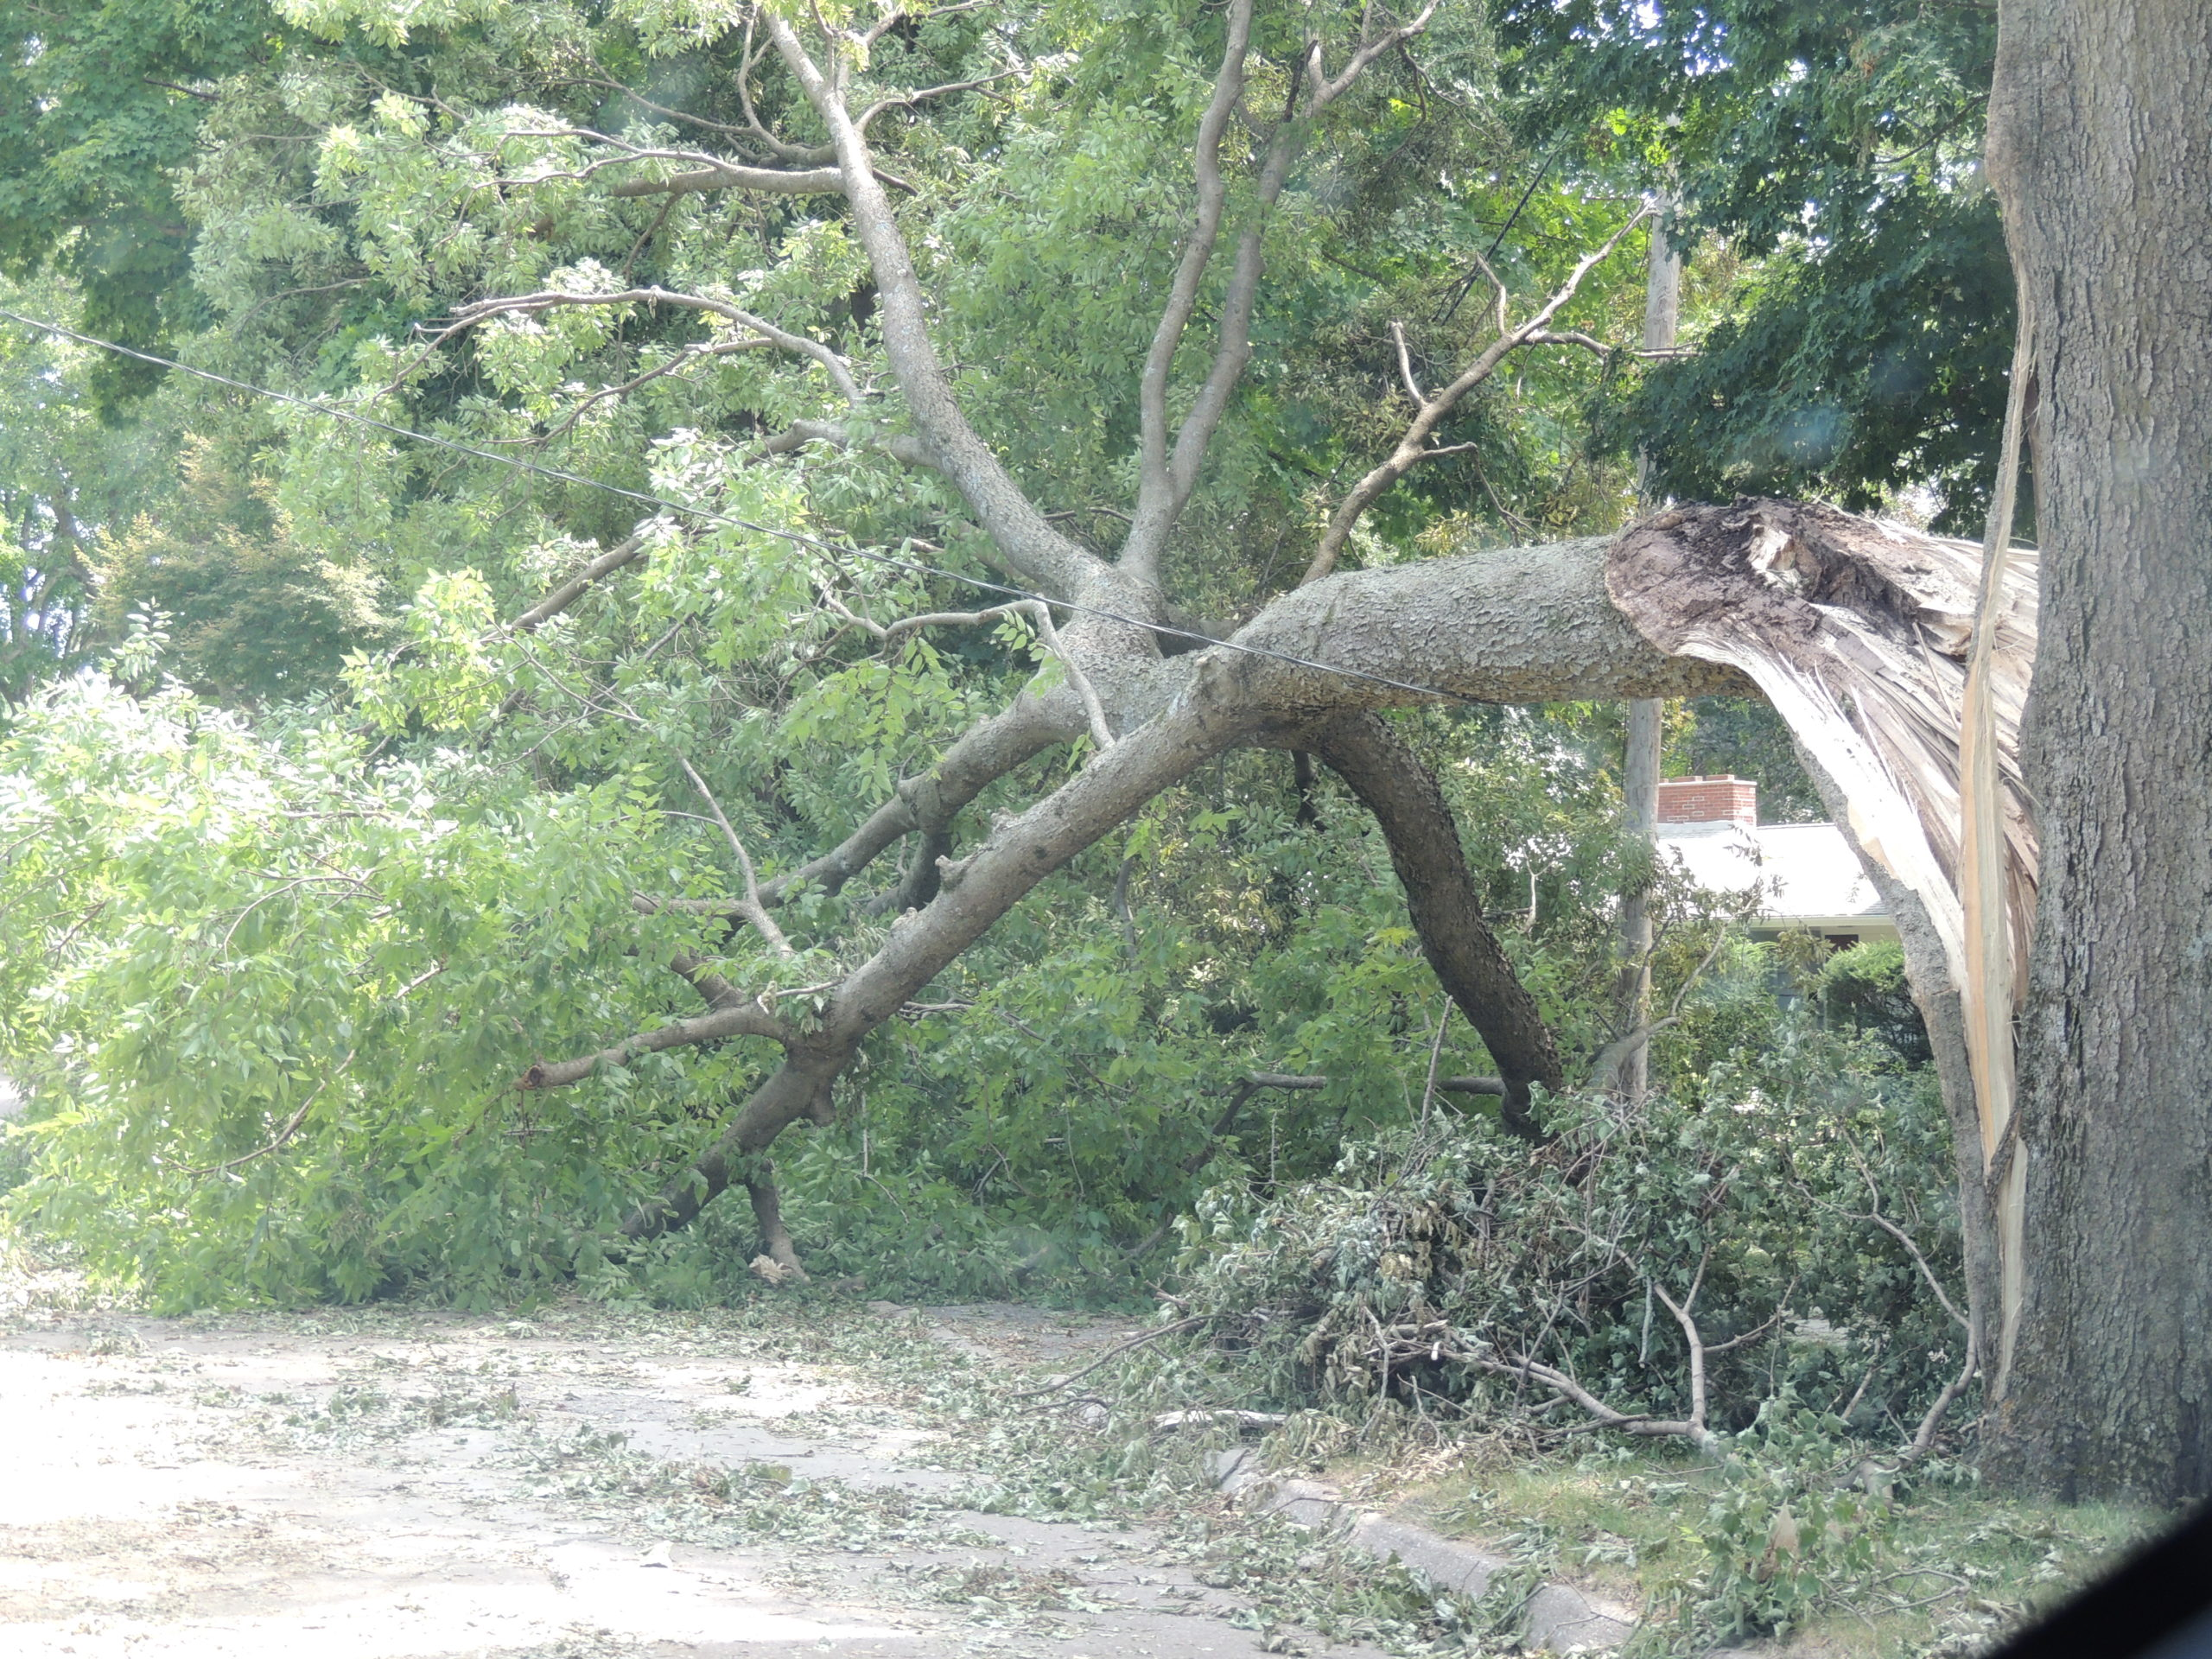 Photo of fallen tree branch